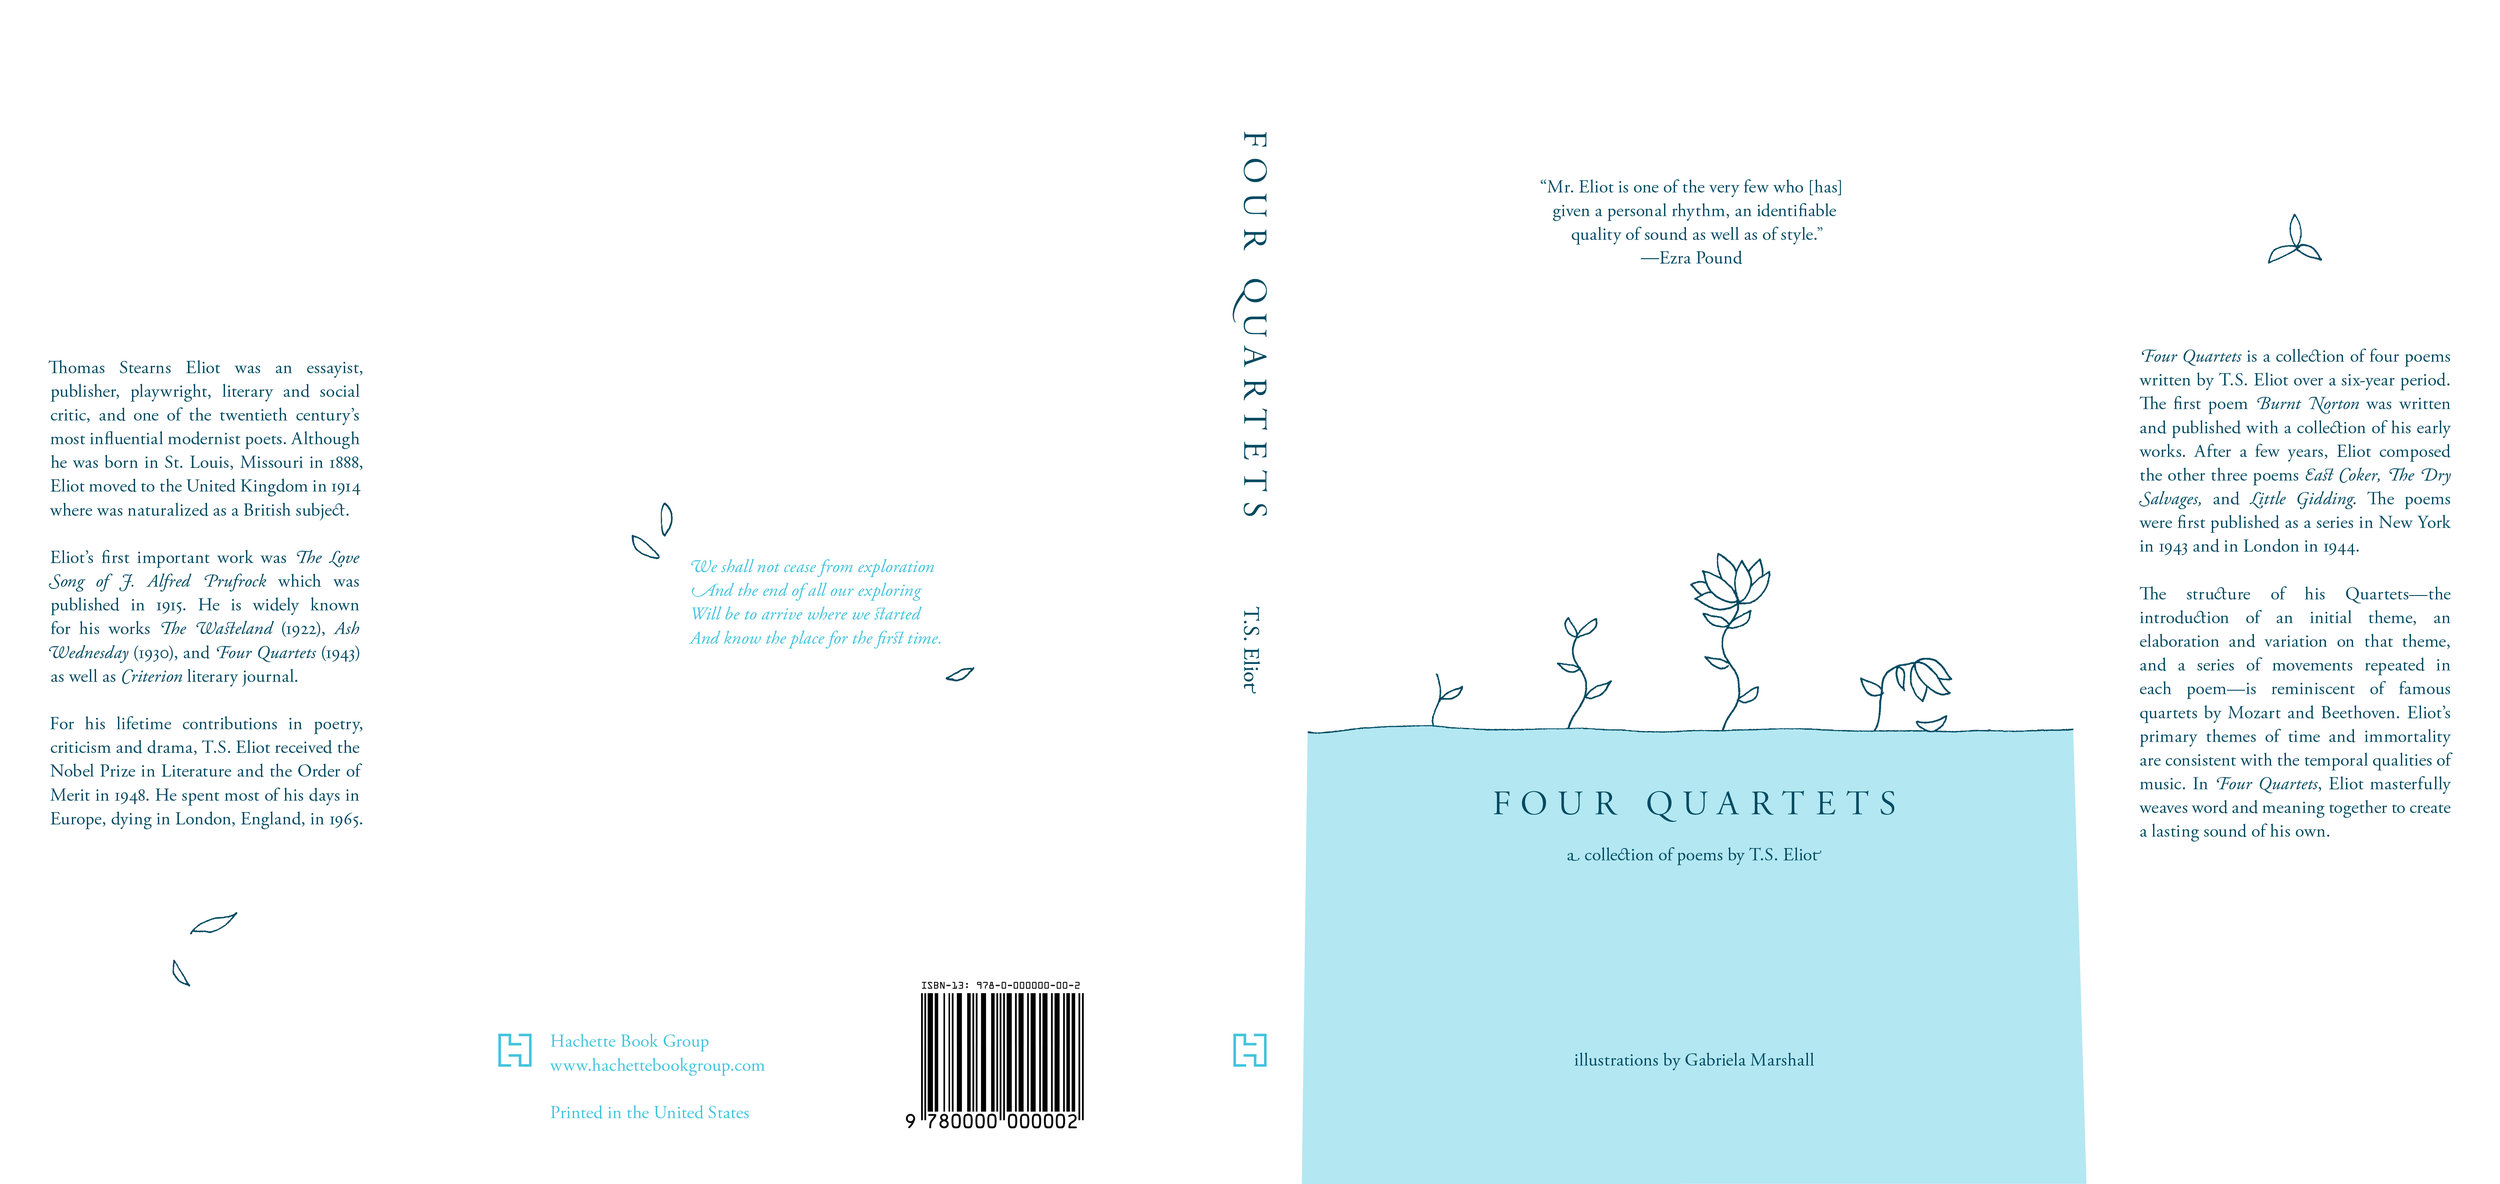 FourQuartets-Covers.jpg